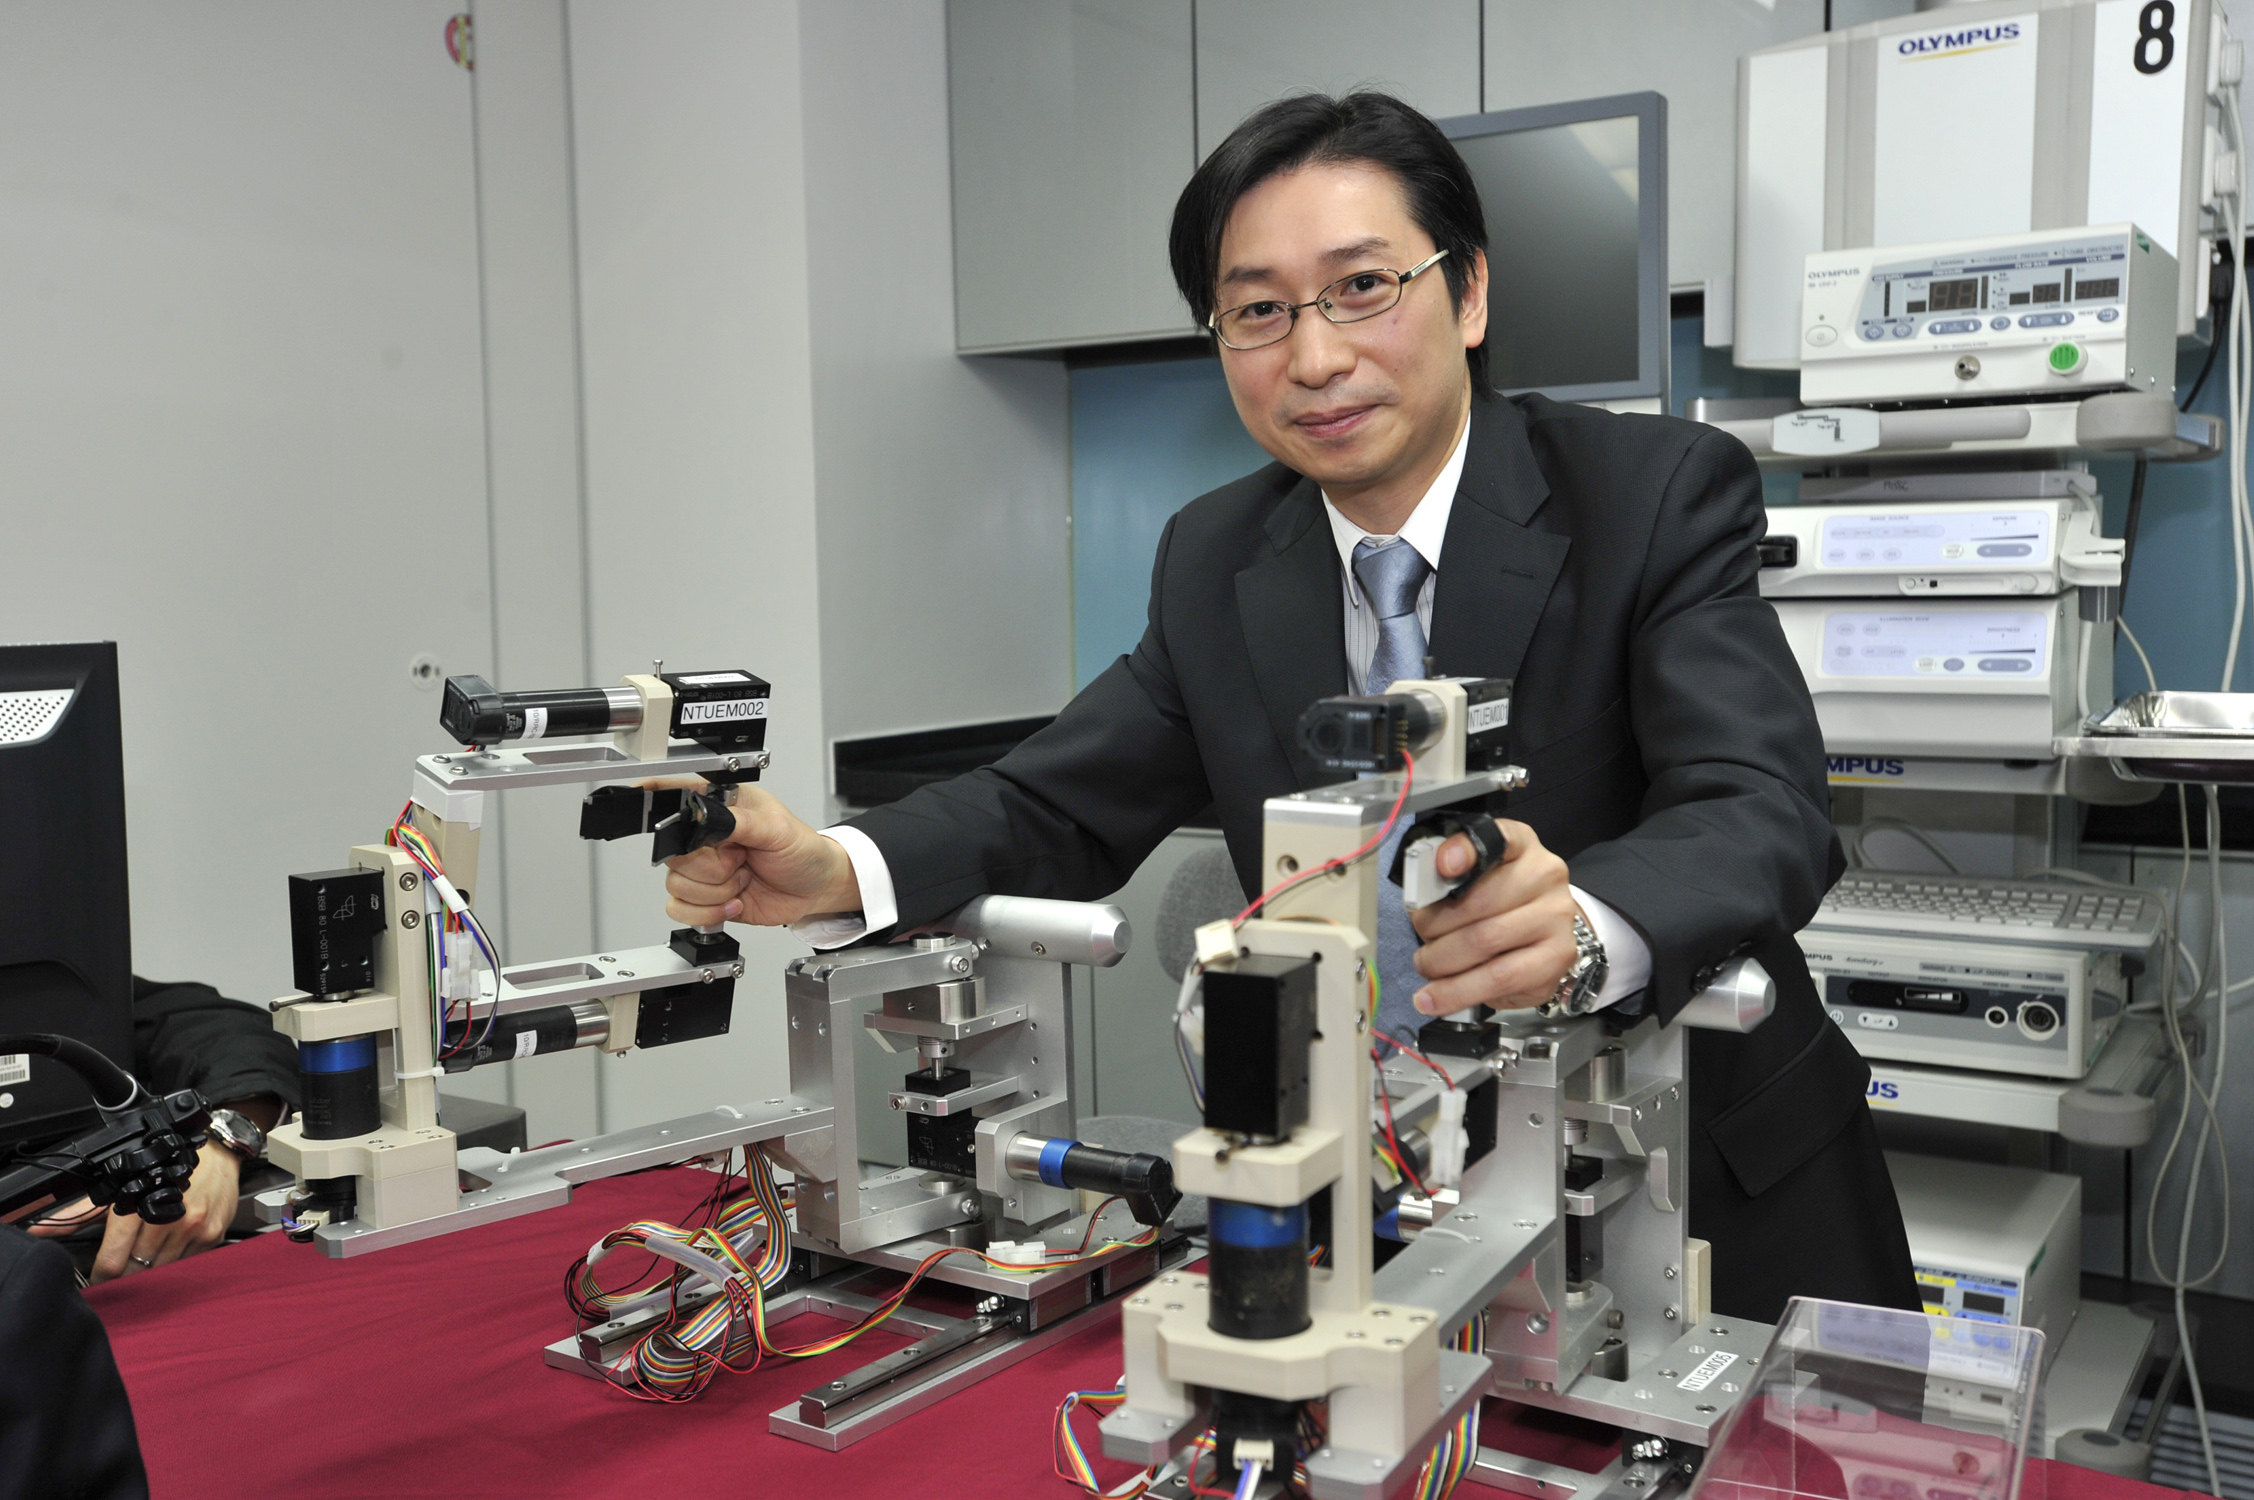 In collaboration with the researchers from Singapore, Professor Philip Wai Yan CHIU of Department of Surgery at CUHK performed the first two cases of Robotic assisted ESD for the treatment of early gastric neoplasia in Hong Kong